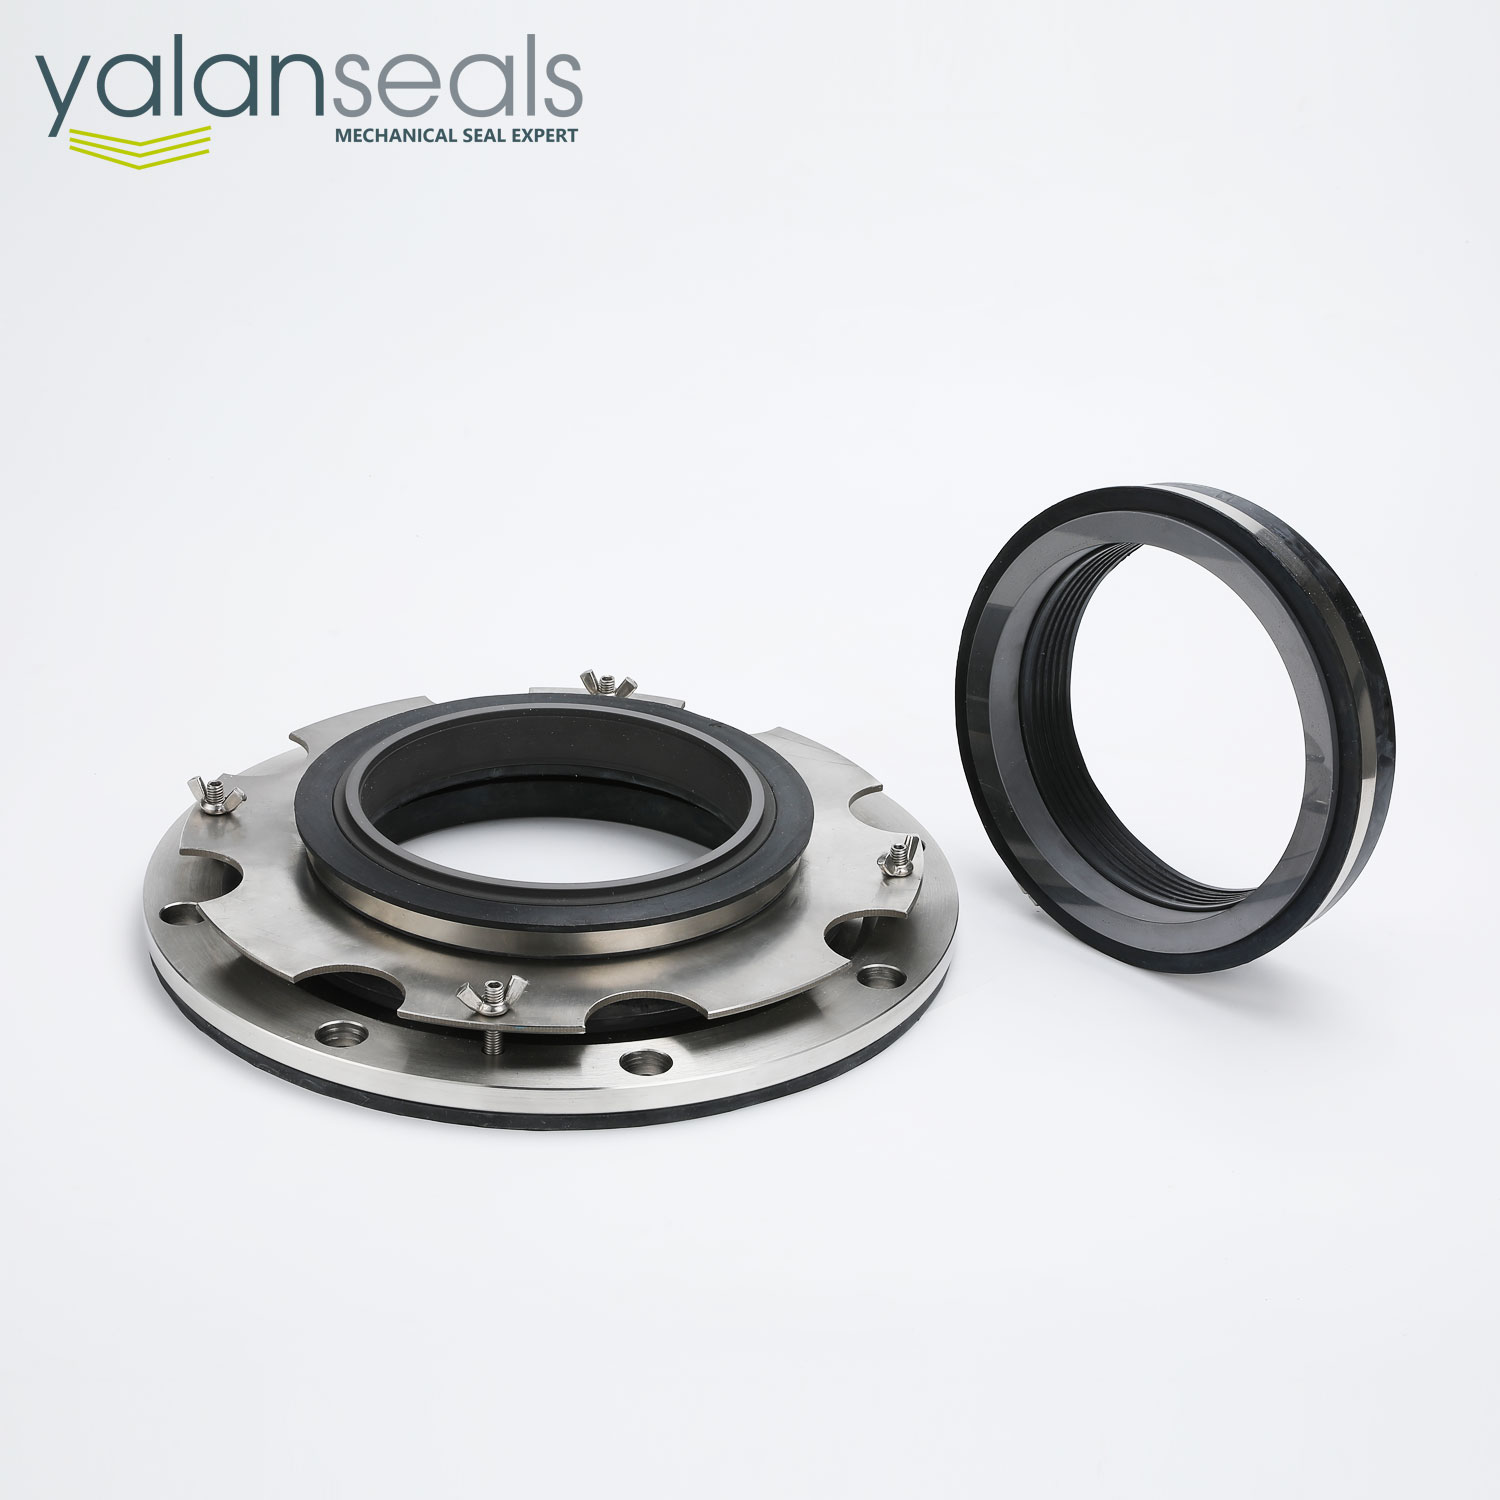 YLTRD-FL Mechanical Seal for Immersion Rollers